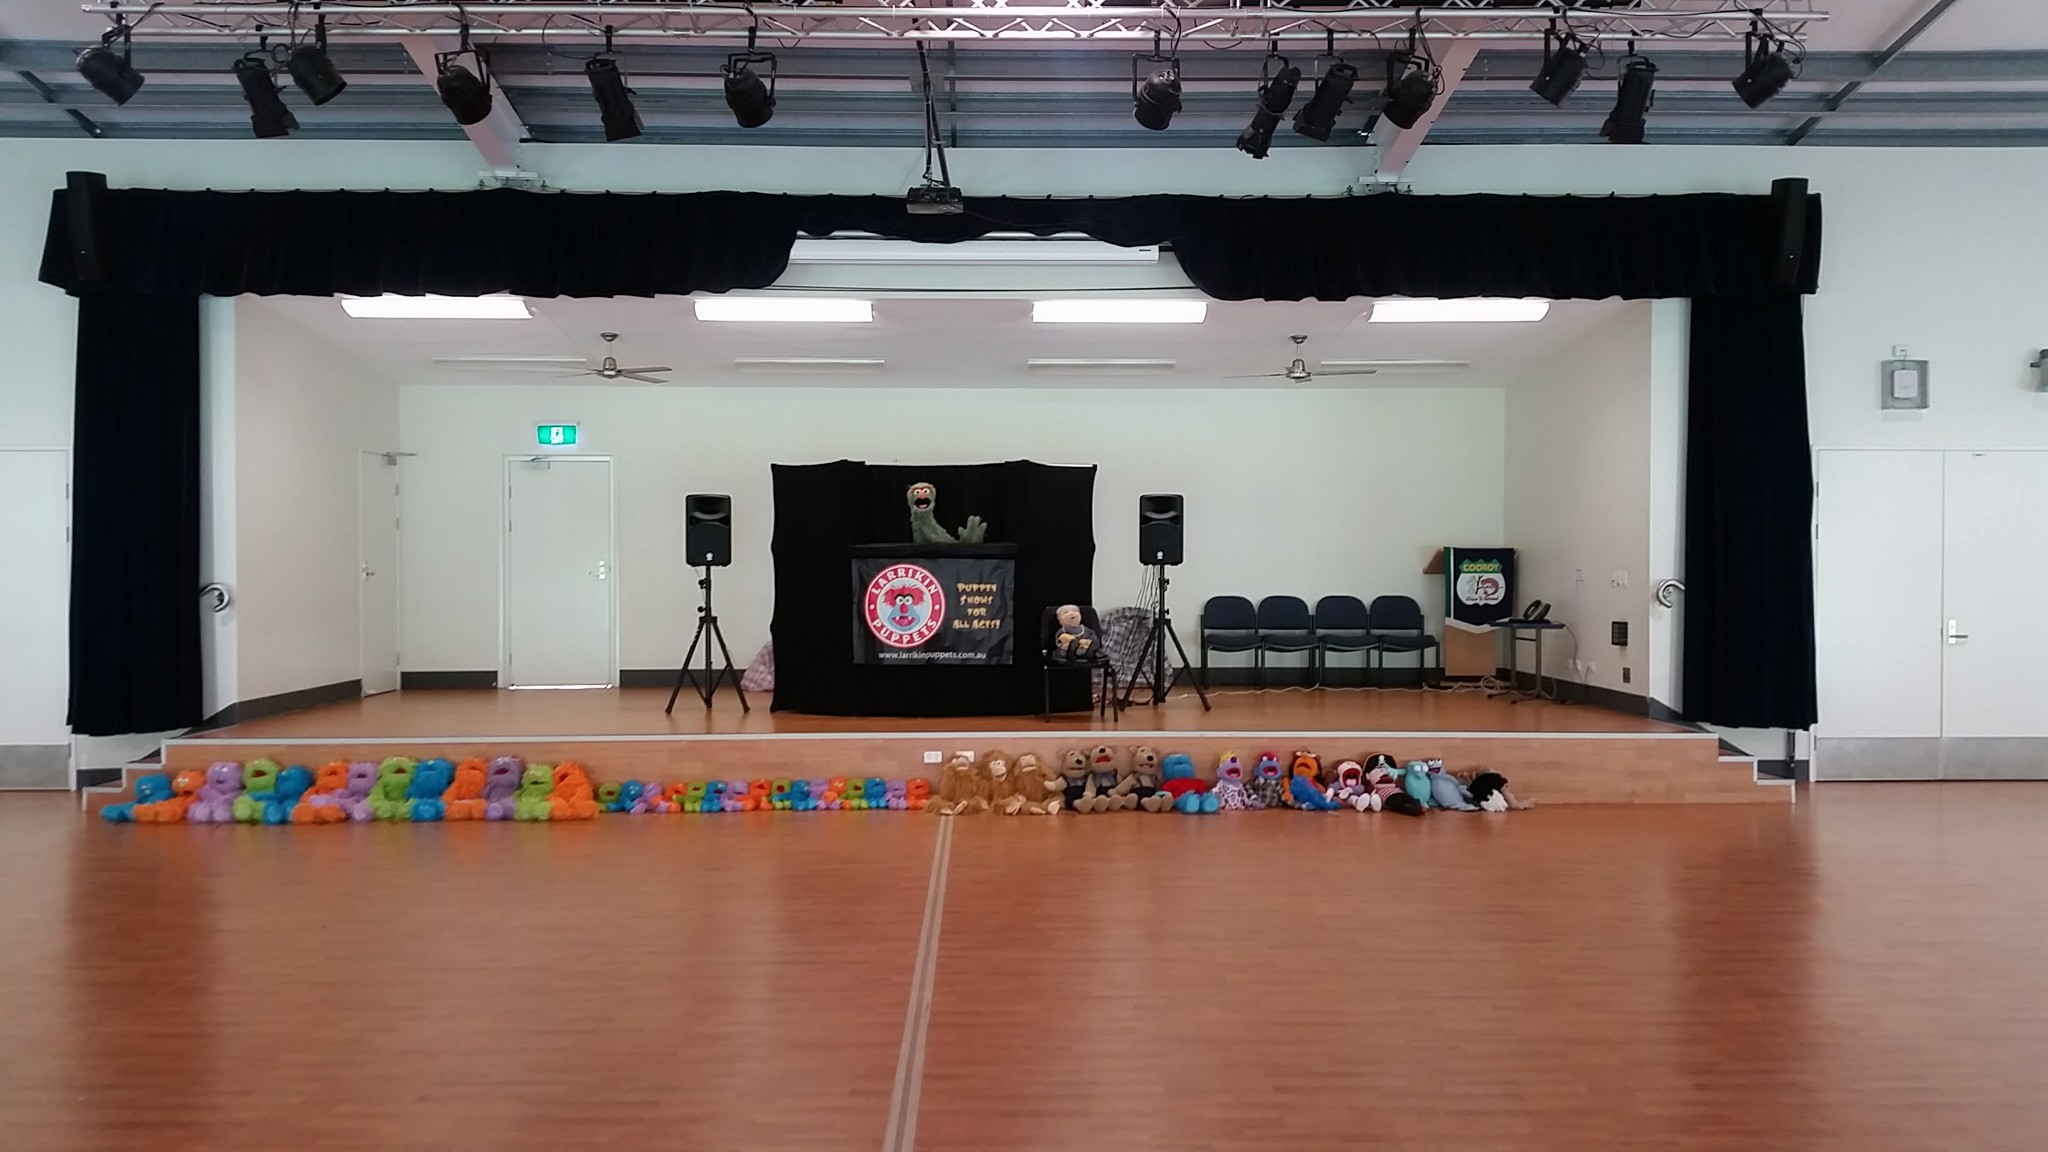 Brisbane Entertainment, Kids Entertainer, Primary Schools | Puppet Shows, Puppetry Workshops - Book Week